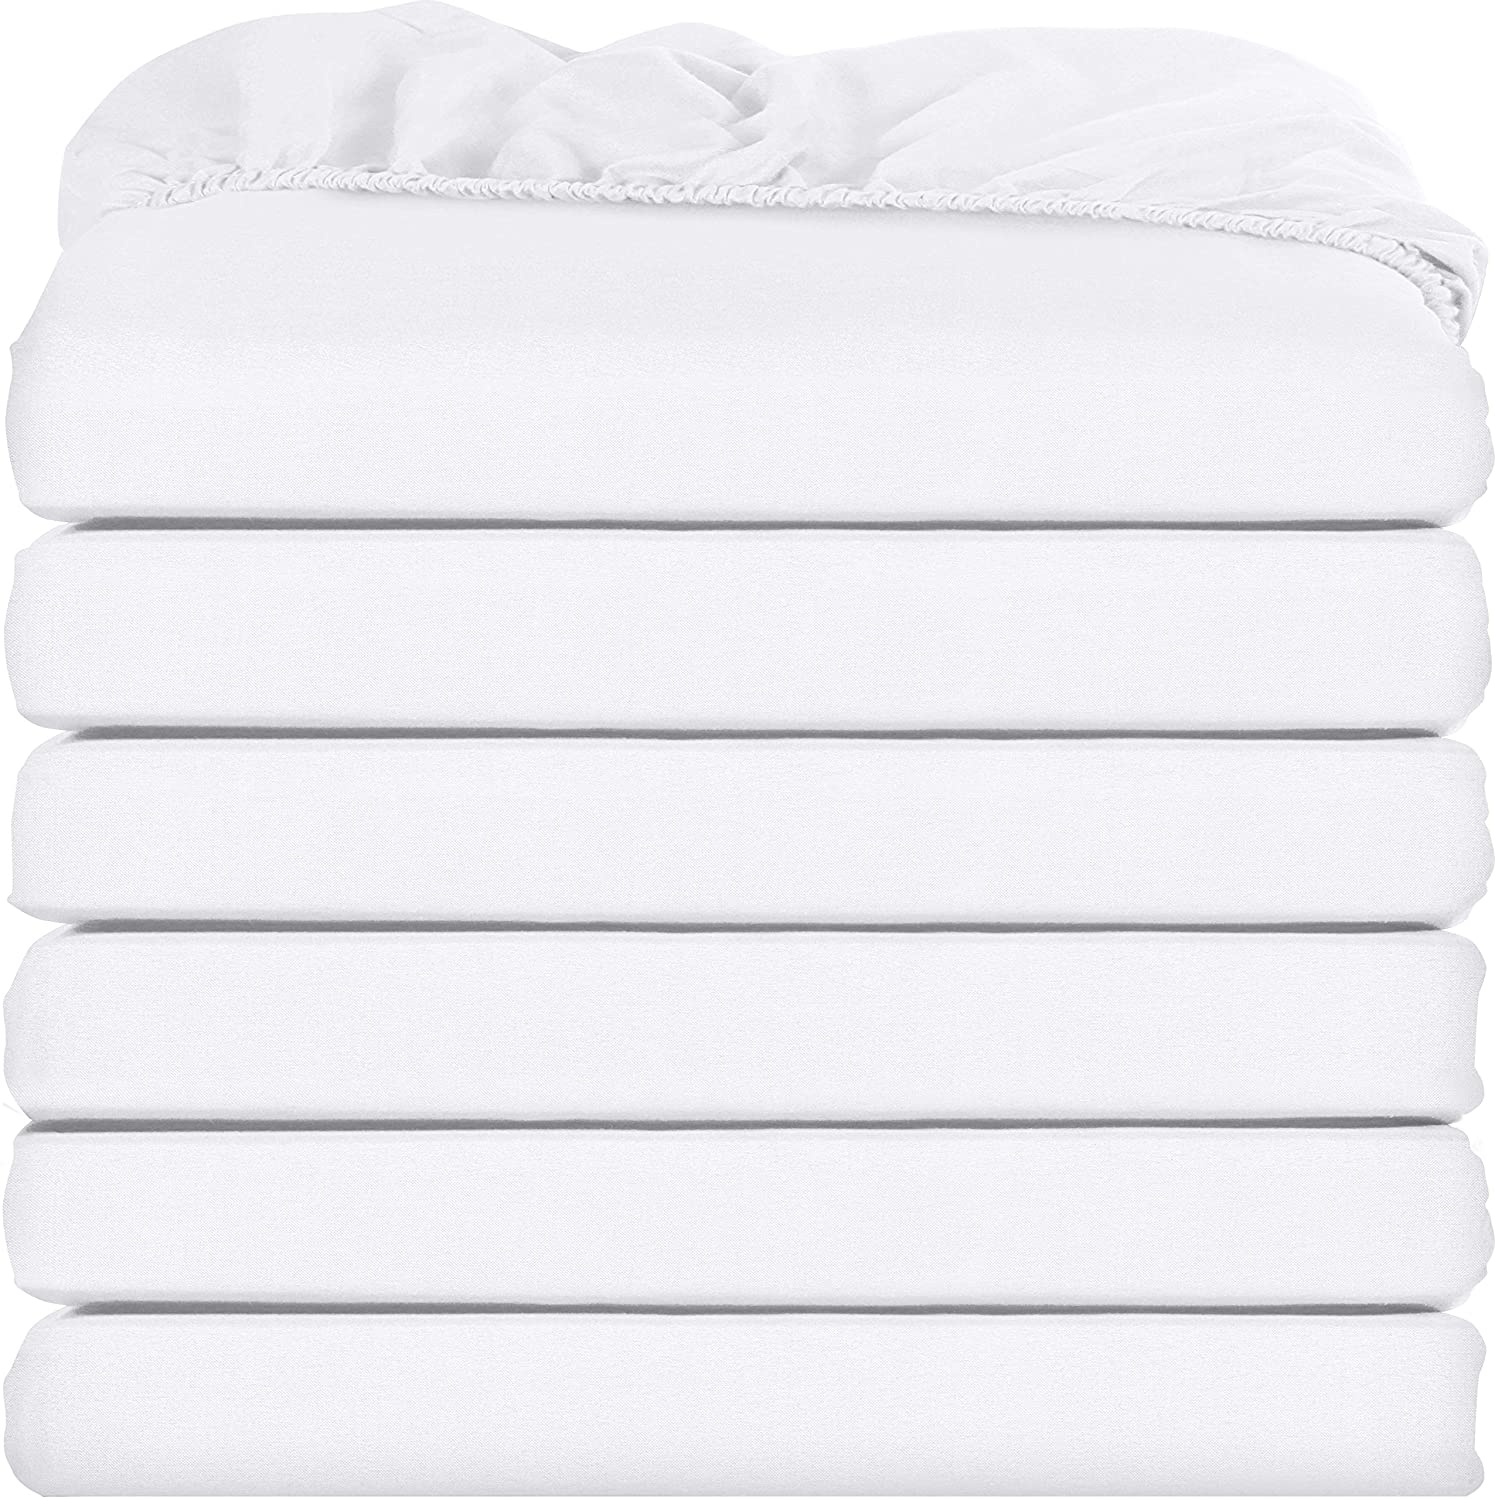 Utopia Bedding Fitted Sheets - Pack of 6 Bottom Sheets - Soft Brushed Microfiber - Deep Pockets, Shrinkage & Fade Resistant - Easy Care (Twin, White)